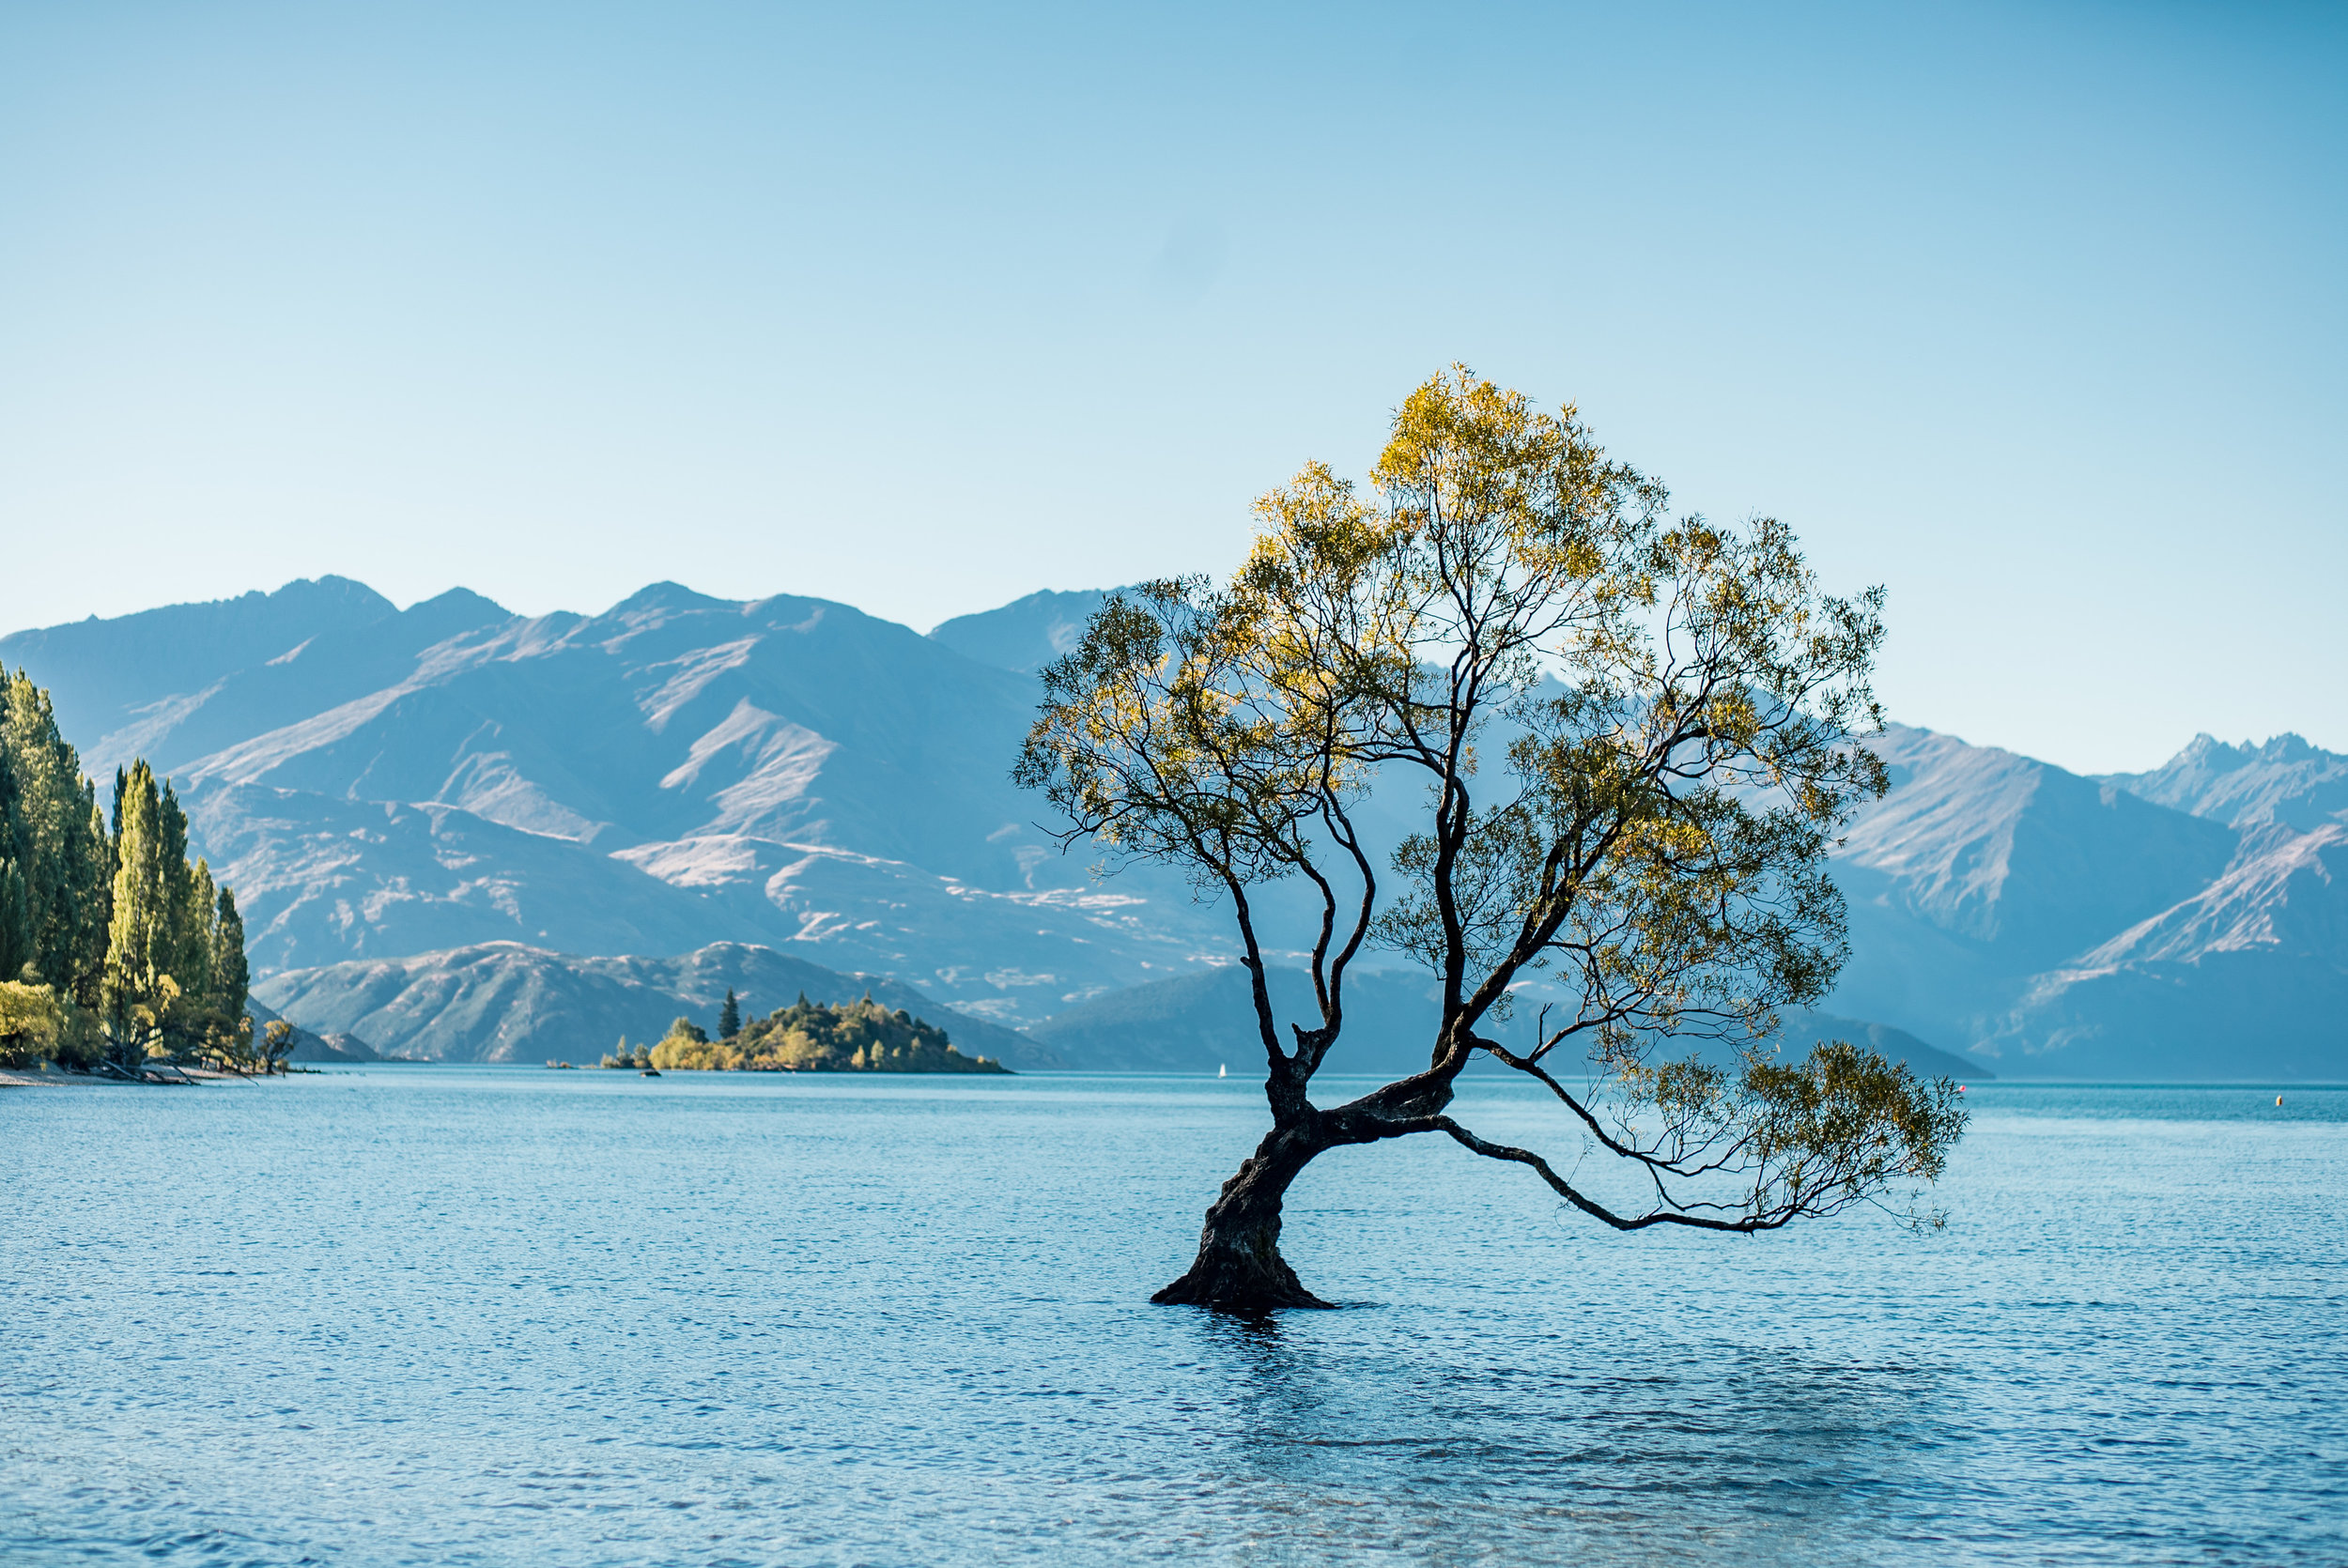 WANAKA - Three days exploring deep blue lakes surrounded by mountains.